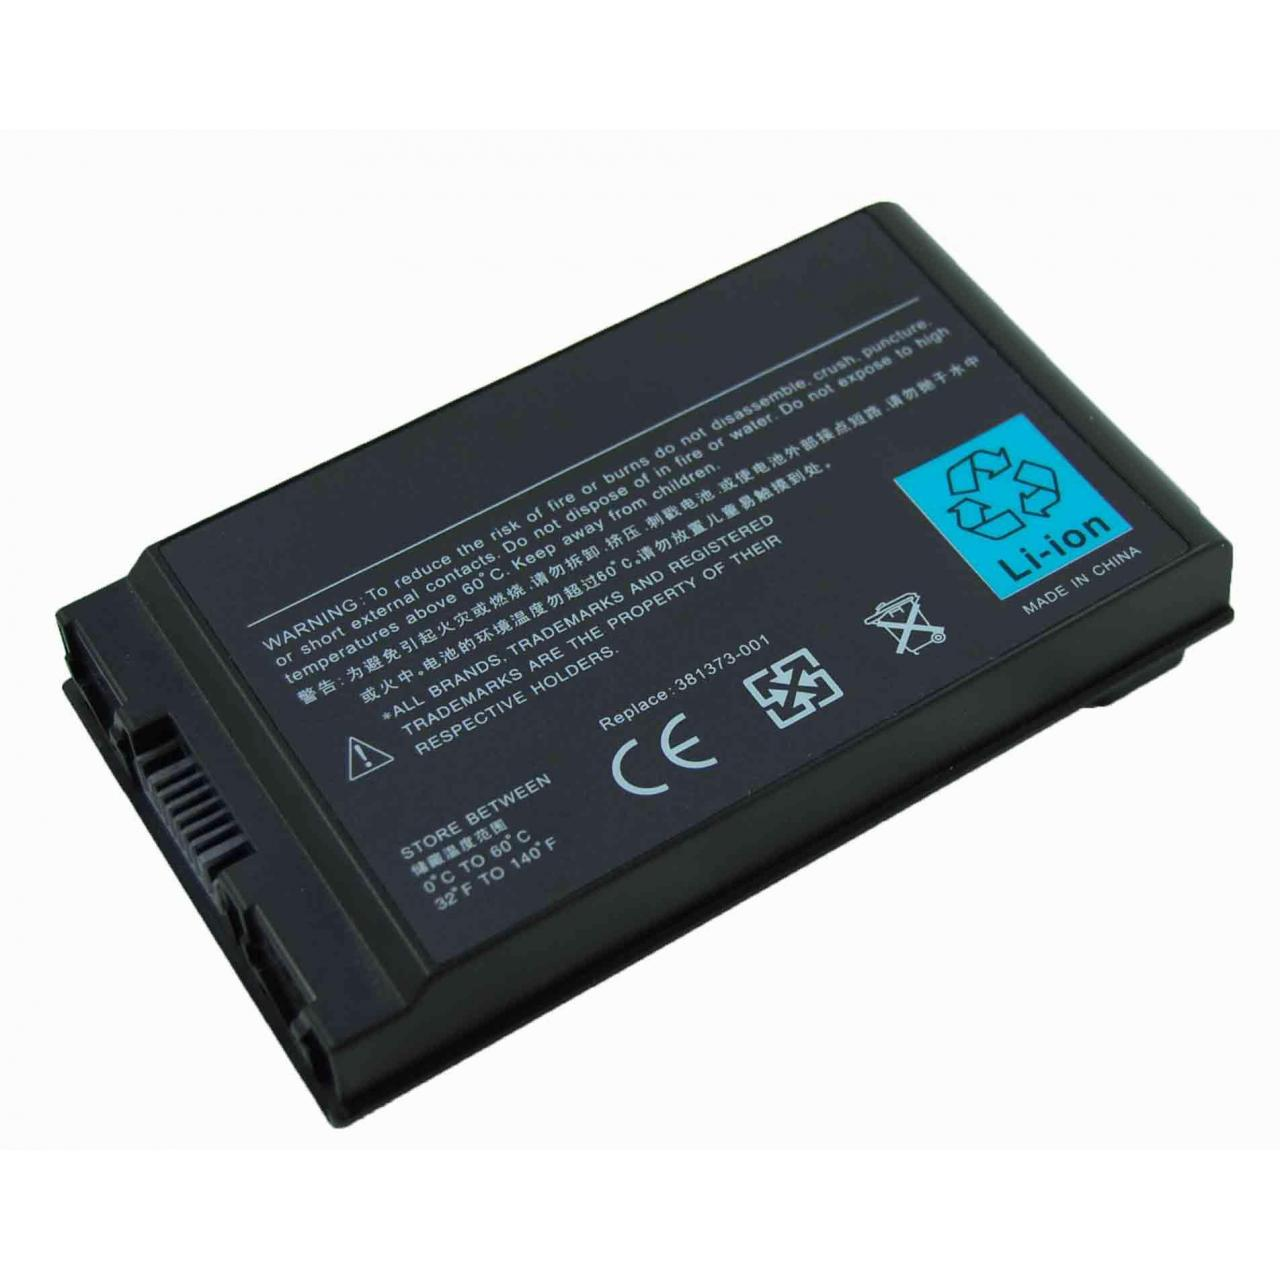 Quality Compaq Business Notebook NC4200 Laptop ac adapters for sale